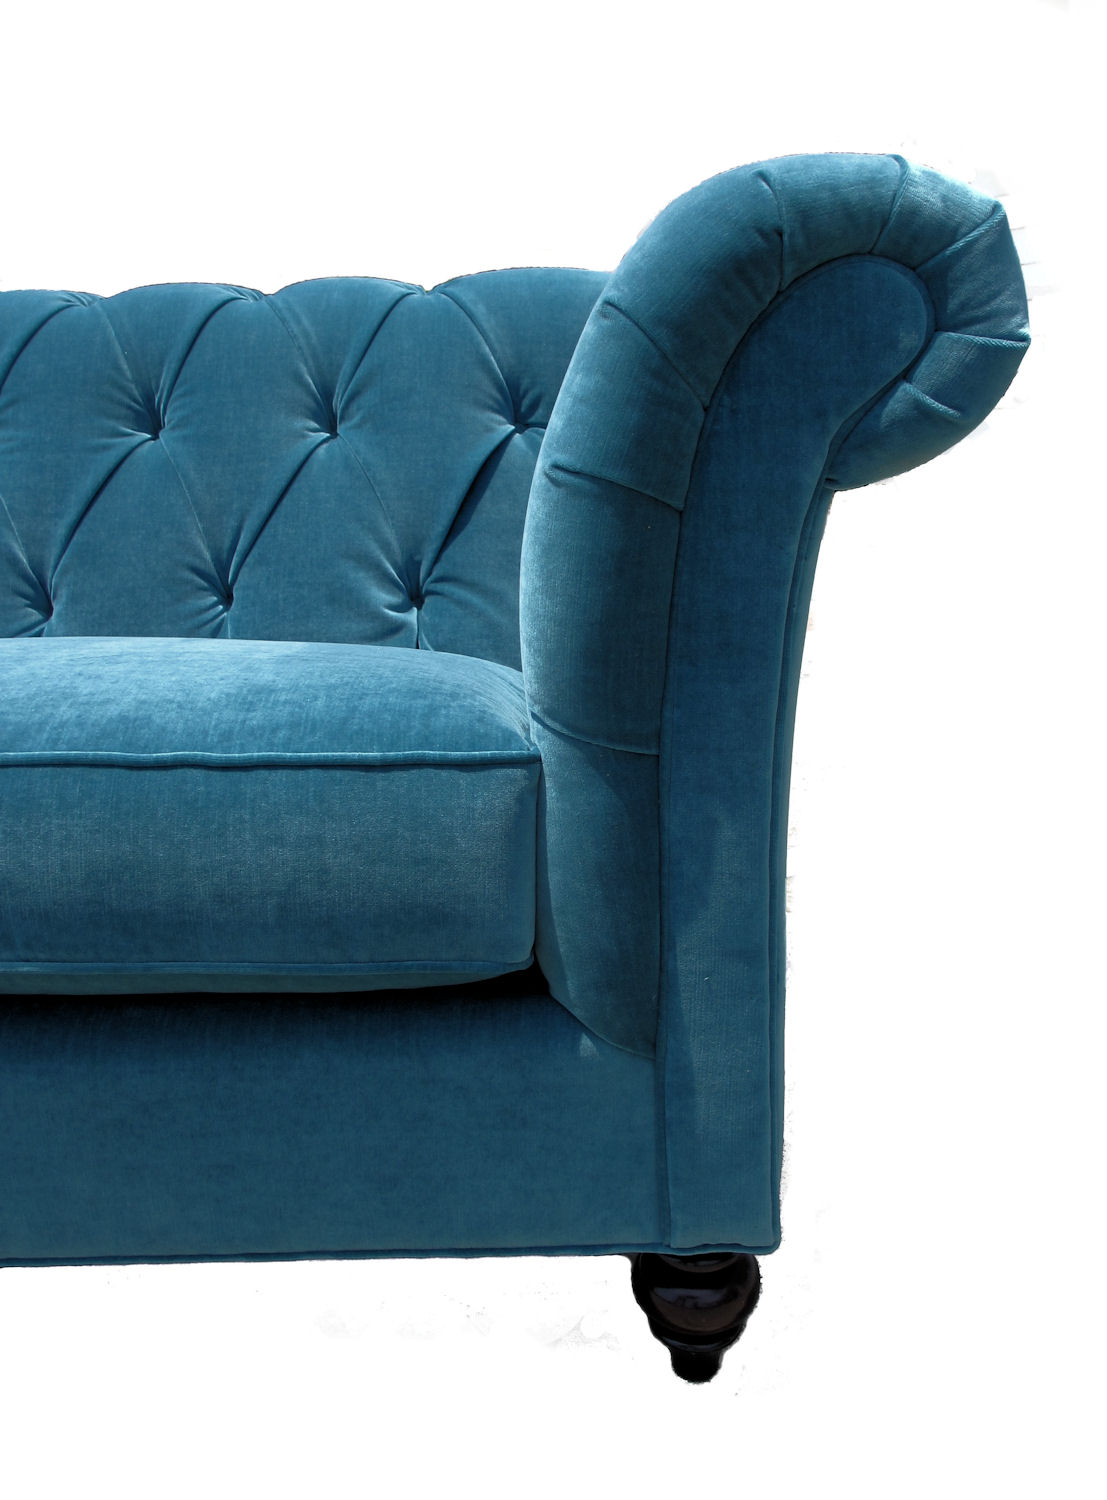 Peacock blue sofa roselawnlutheran for Keegan fabric 2 piece sectional sofa peacock